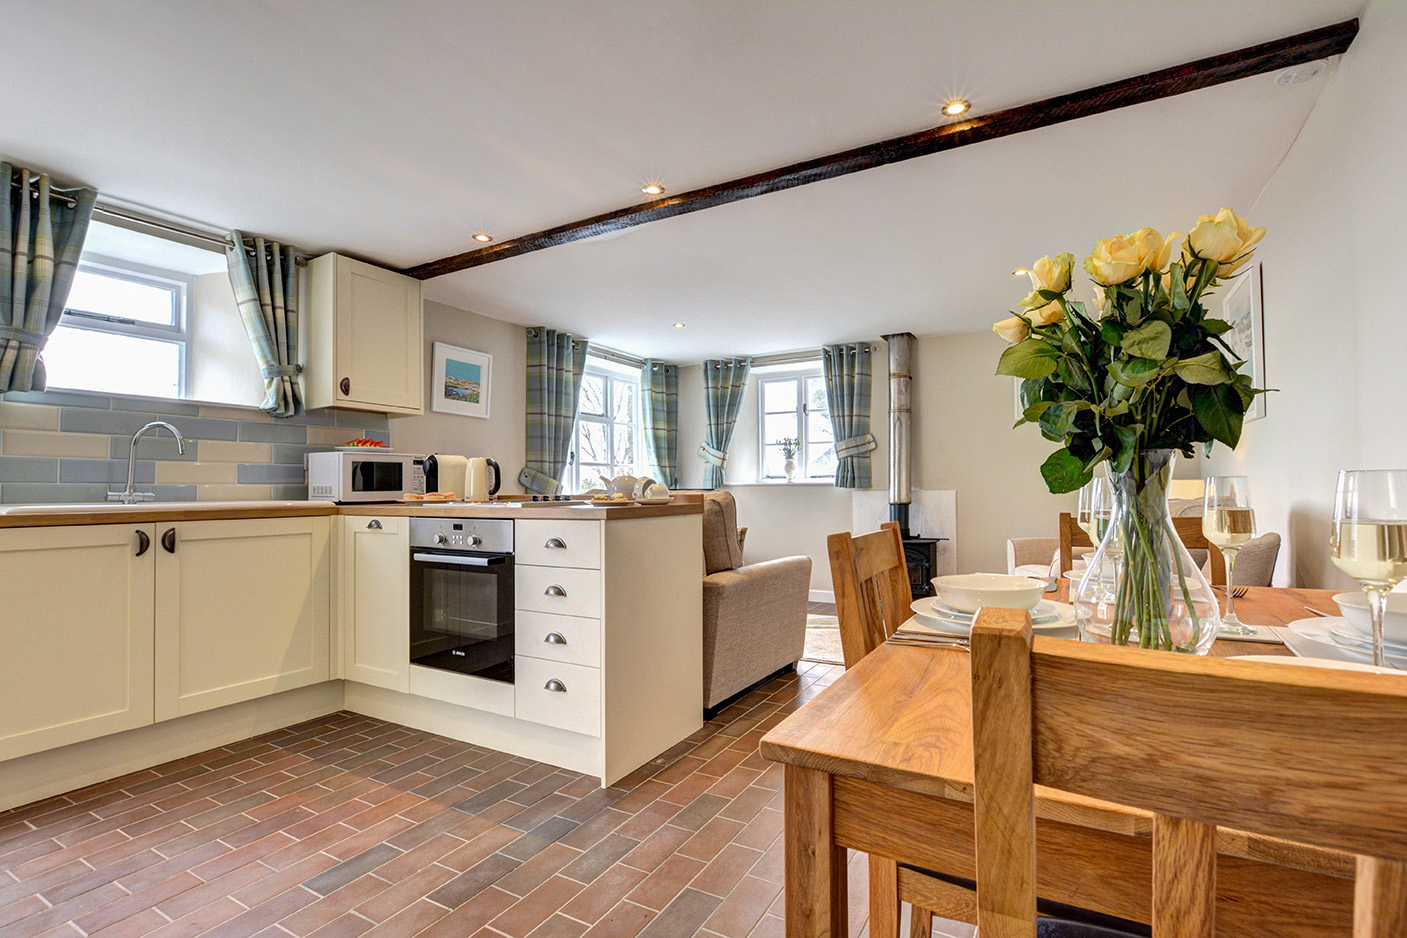 The dining area and kitchen of Butterwell luxury self catering converted barn holiday cottage at Penrose Burden in North Cornwall 01.jpg